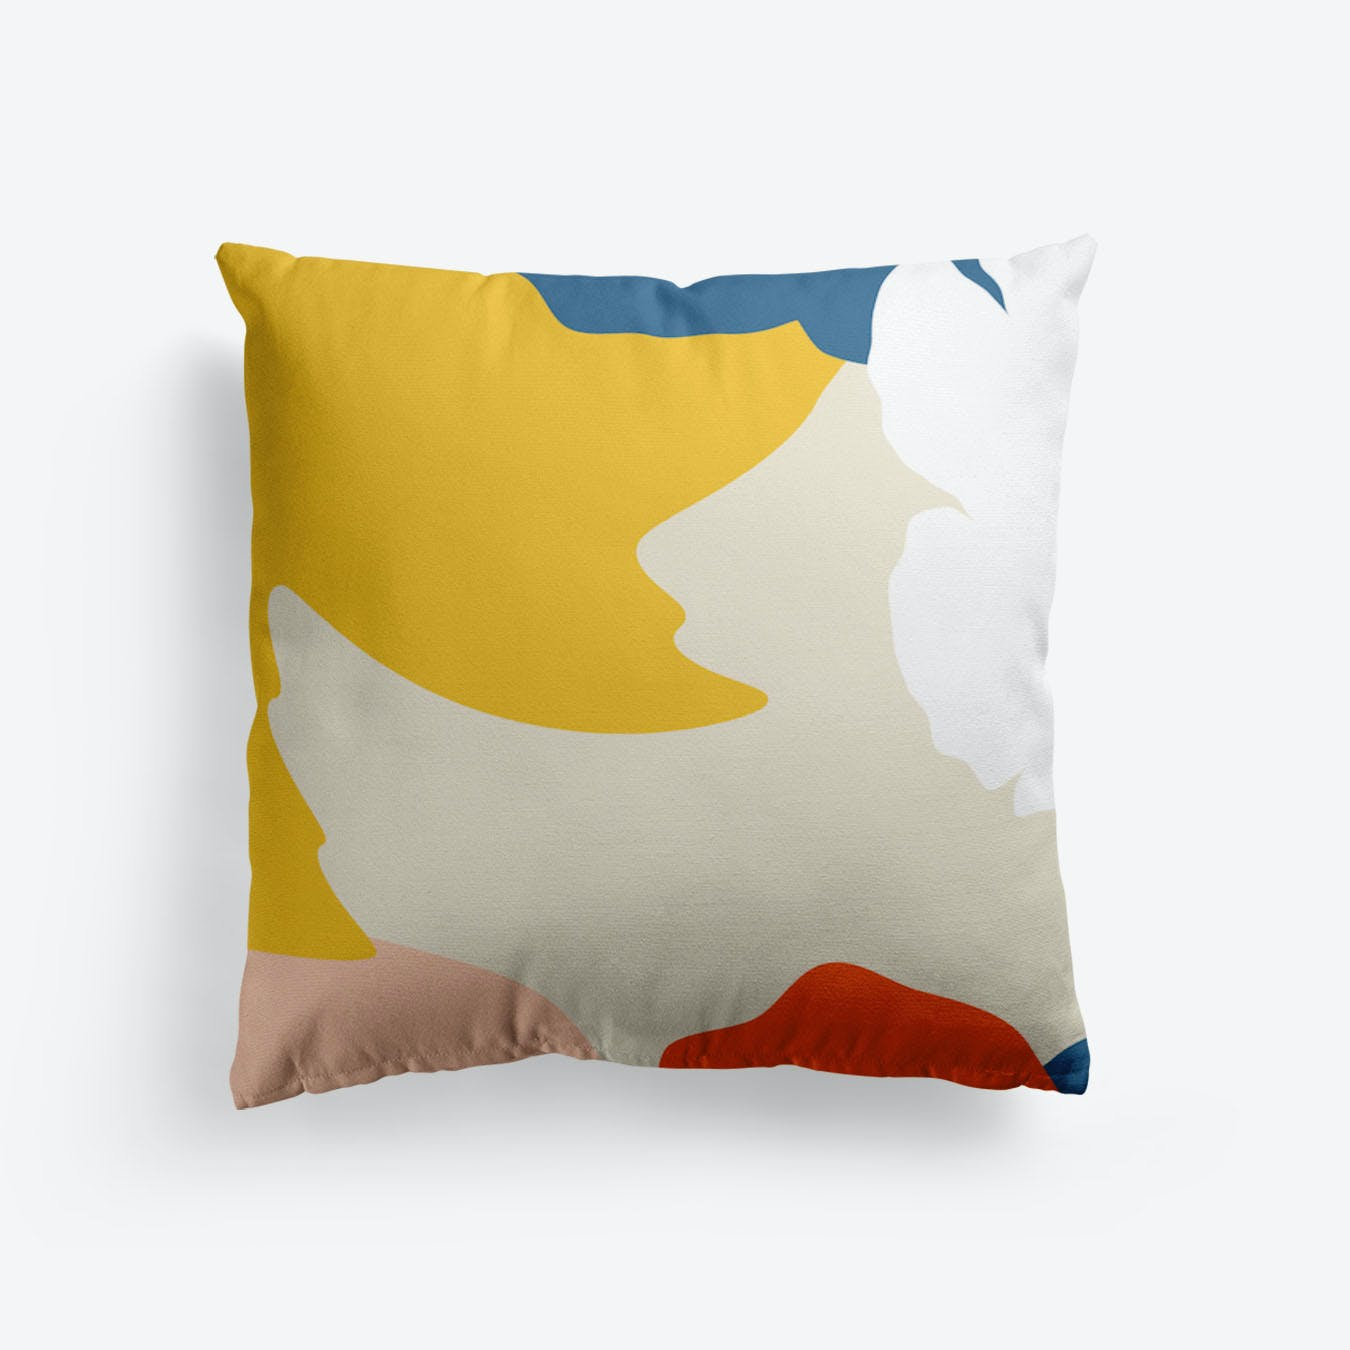 Retro Cushions Bricolage In Retro Vibes Cushion